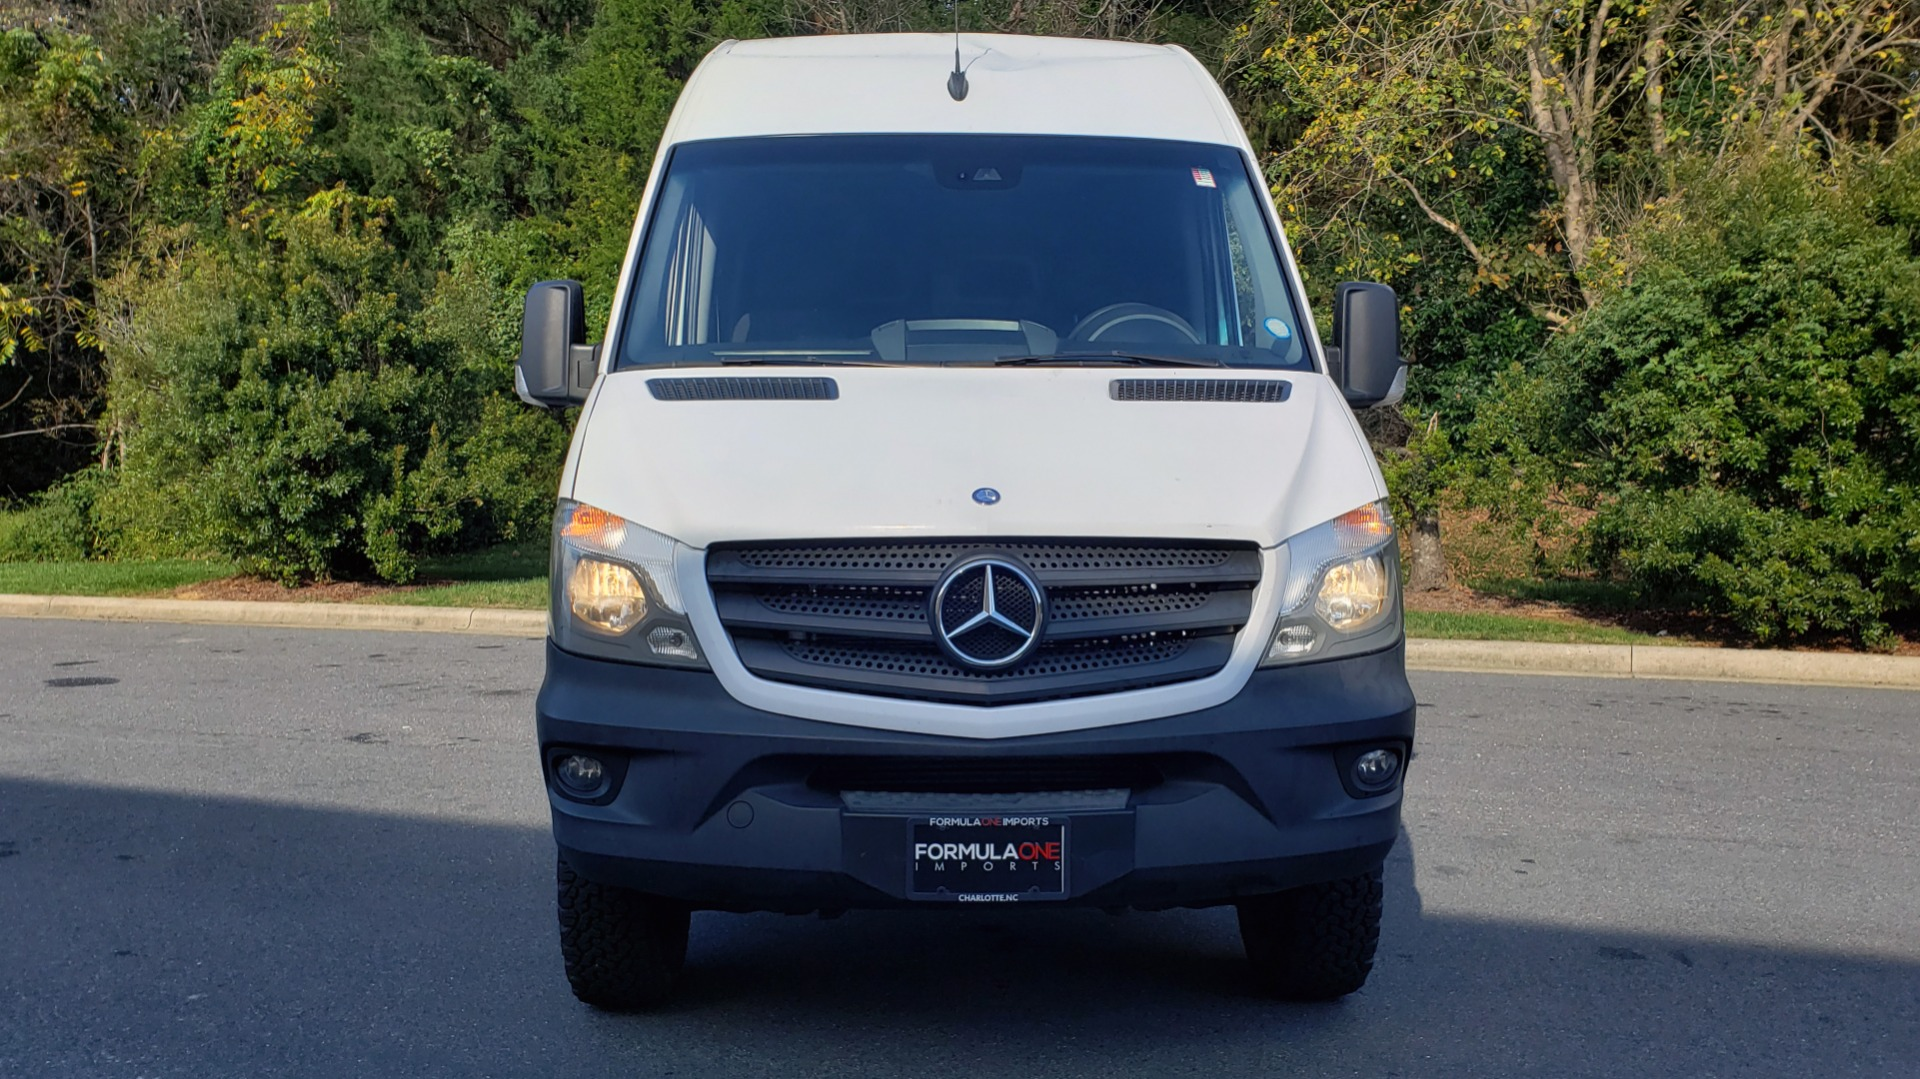 Used 2015 Mercedes-Benz SPRINTER CARGO VAN 4x4 3500 170 EXT / 3.0L V6 TURBO DIESEL / 5-SPD AUTO / REARVIEW for sale $51,999 at Formula Imports in Charlotte NC 28227 35